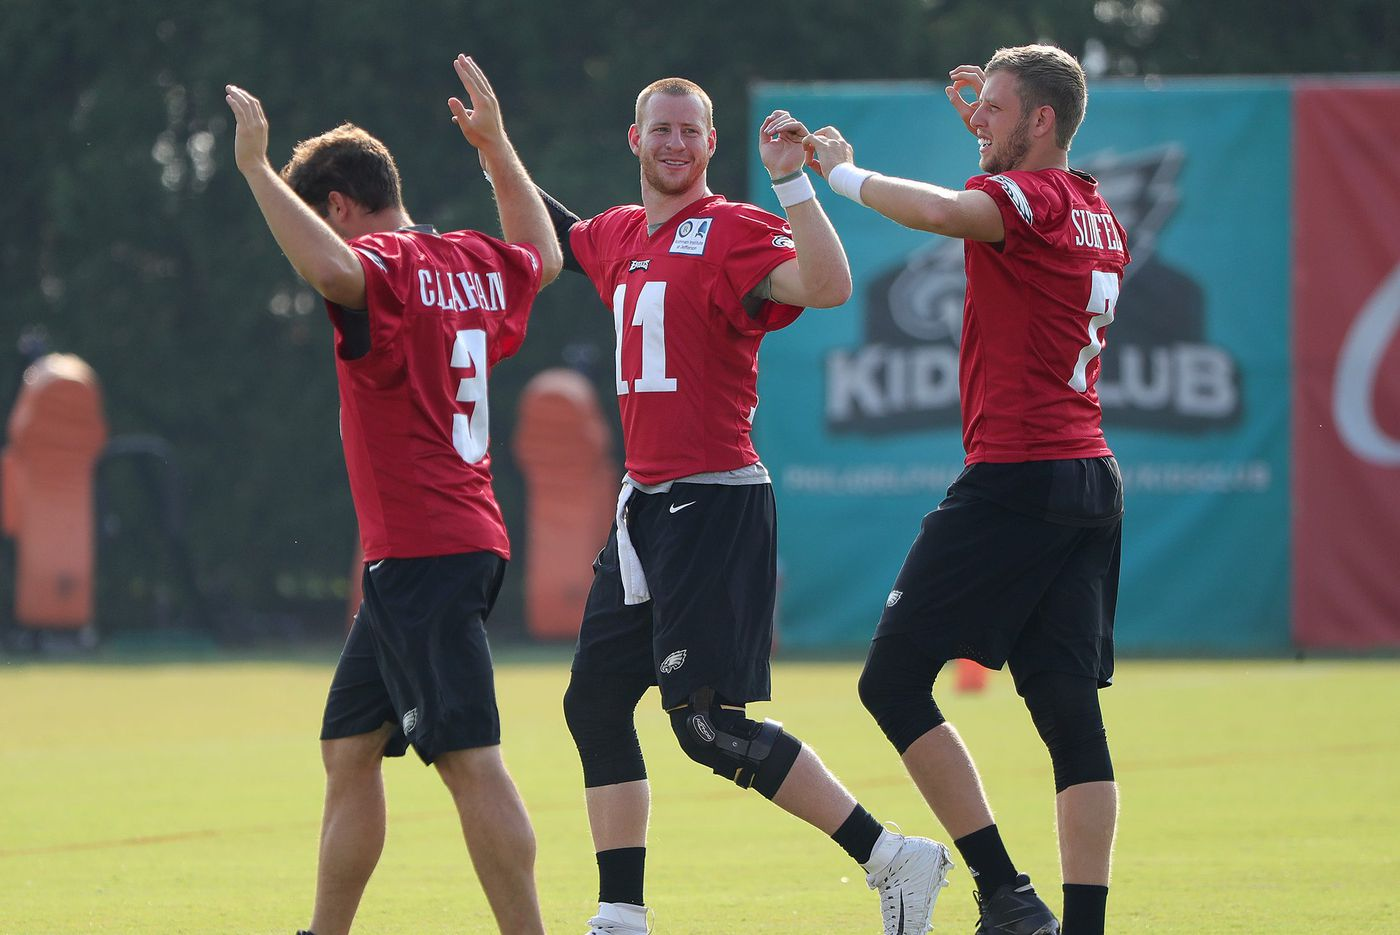 Eagles practice observations: Carson Wentz dazzles; Josh Adams gets a chance; Nate Sudfeld gets more reps